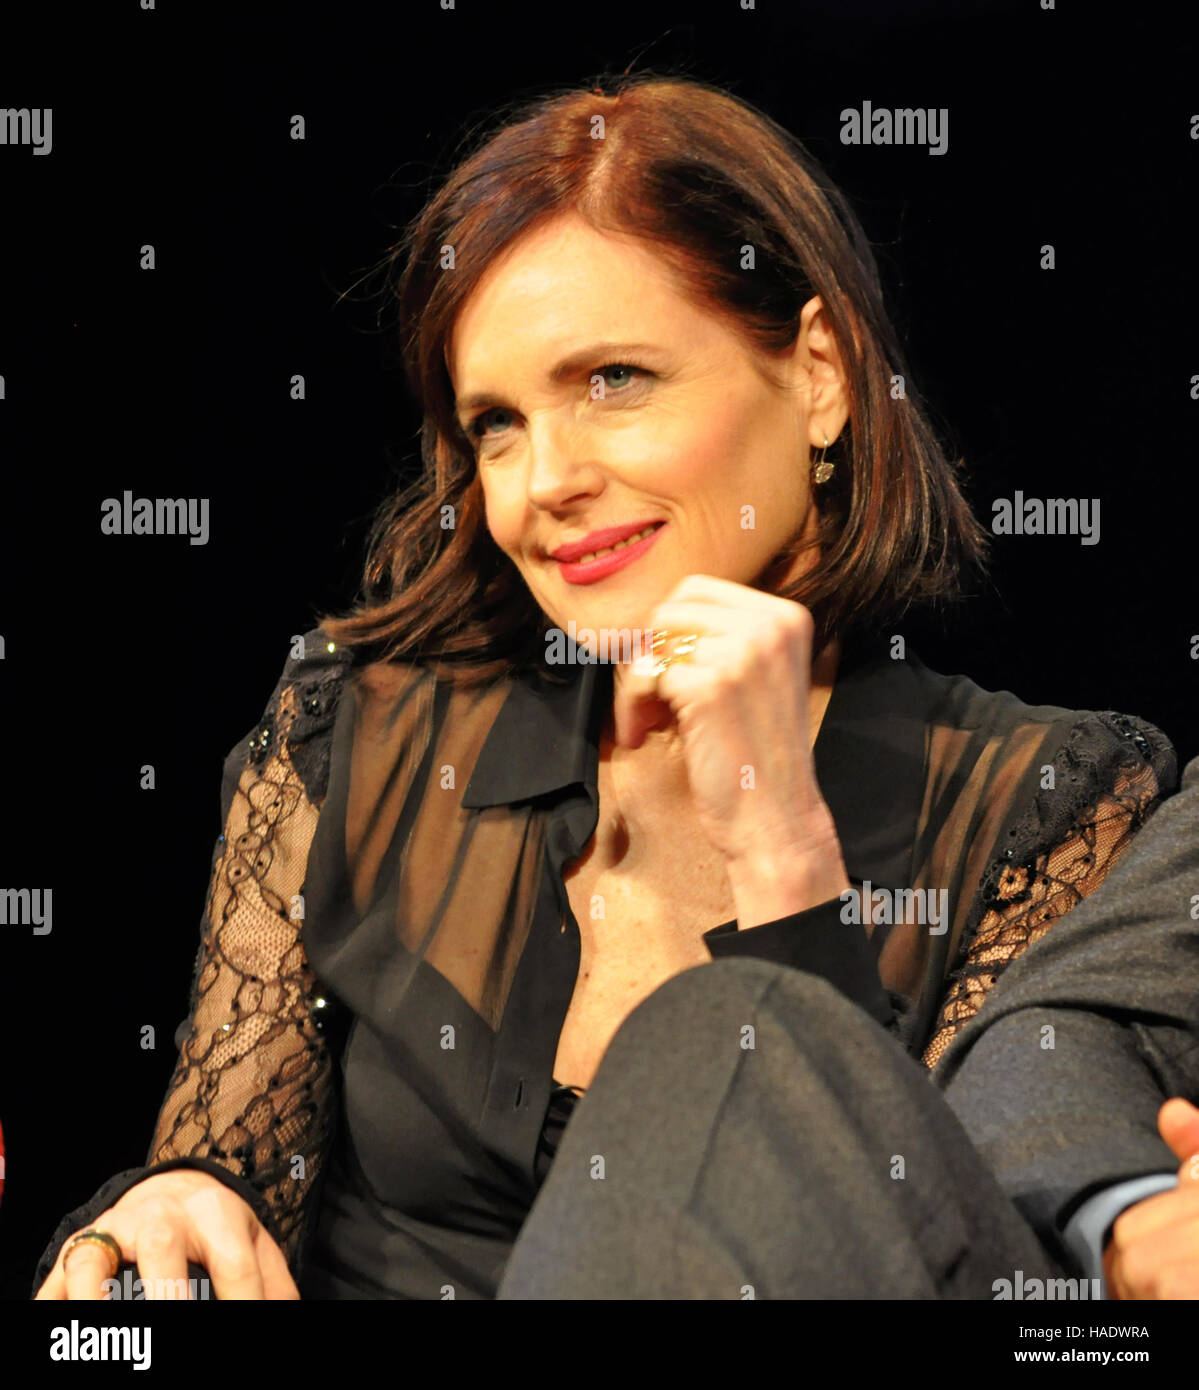 NY, NY. December 8 2015. Elizabeth McGovern (Lady Grantham) at the 'Downtown Abbey' PBS panel. © Veronica - Stock Image